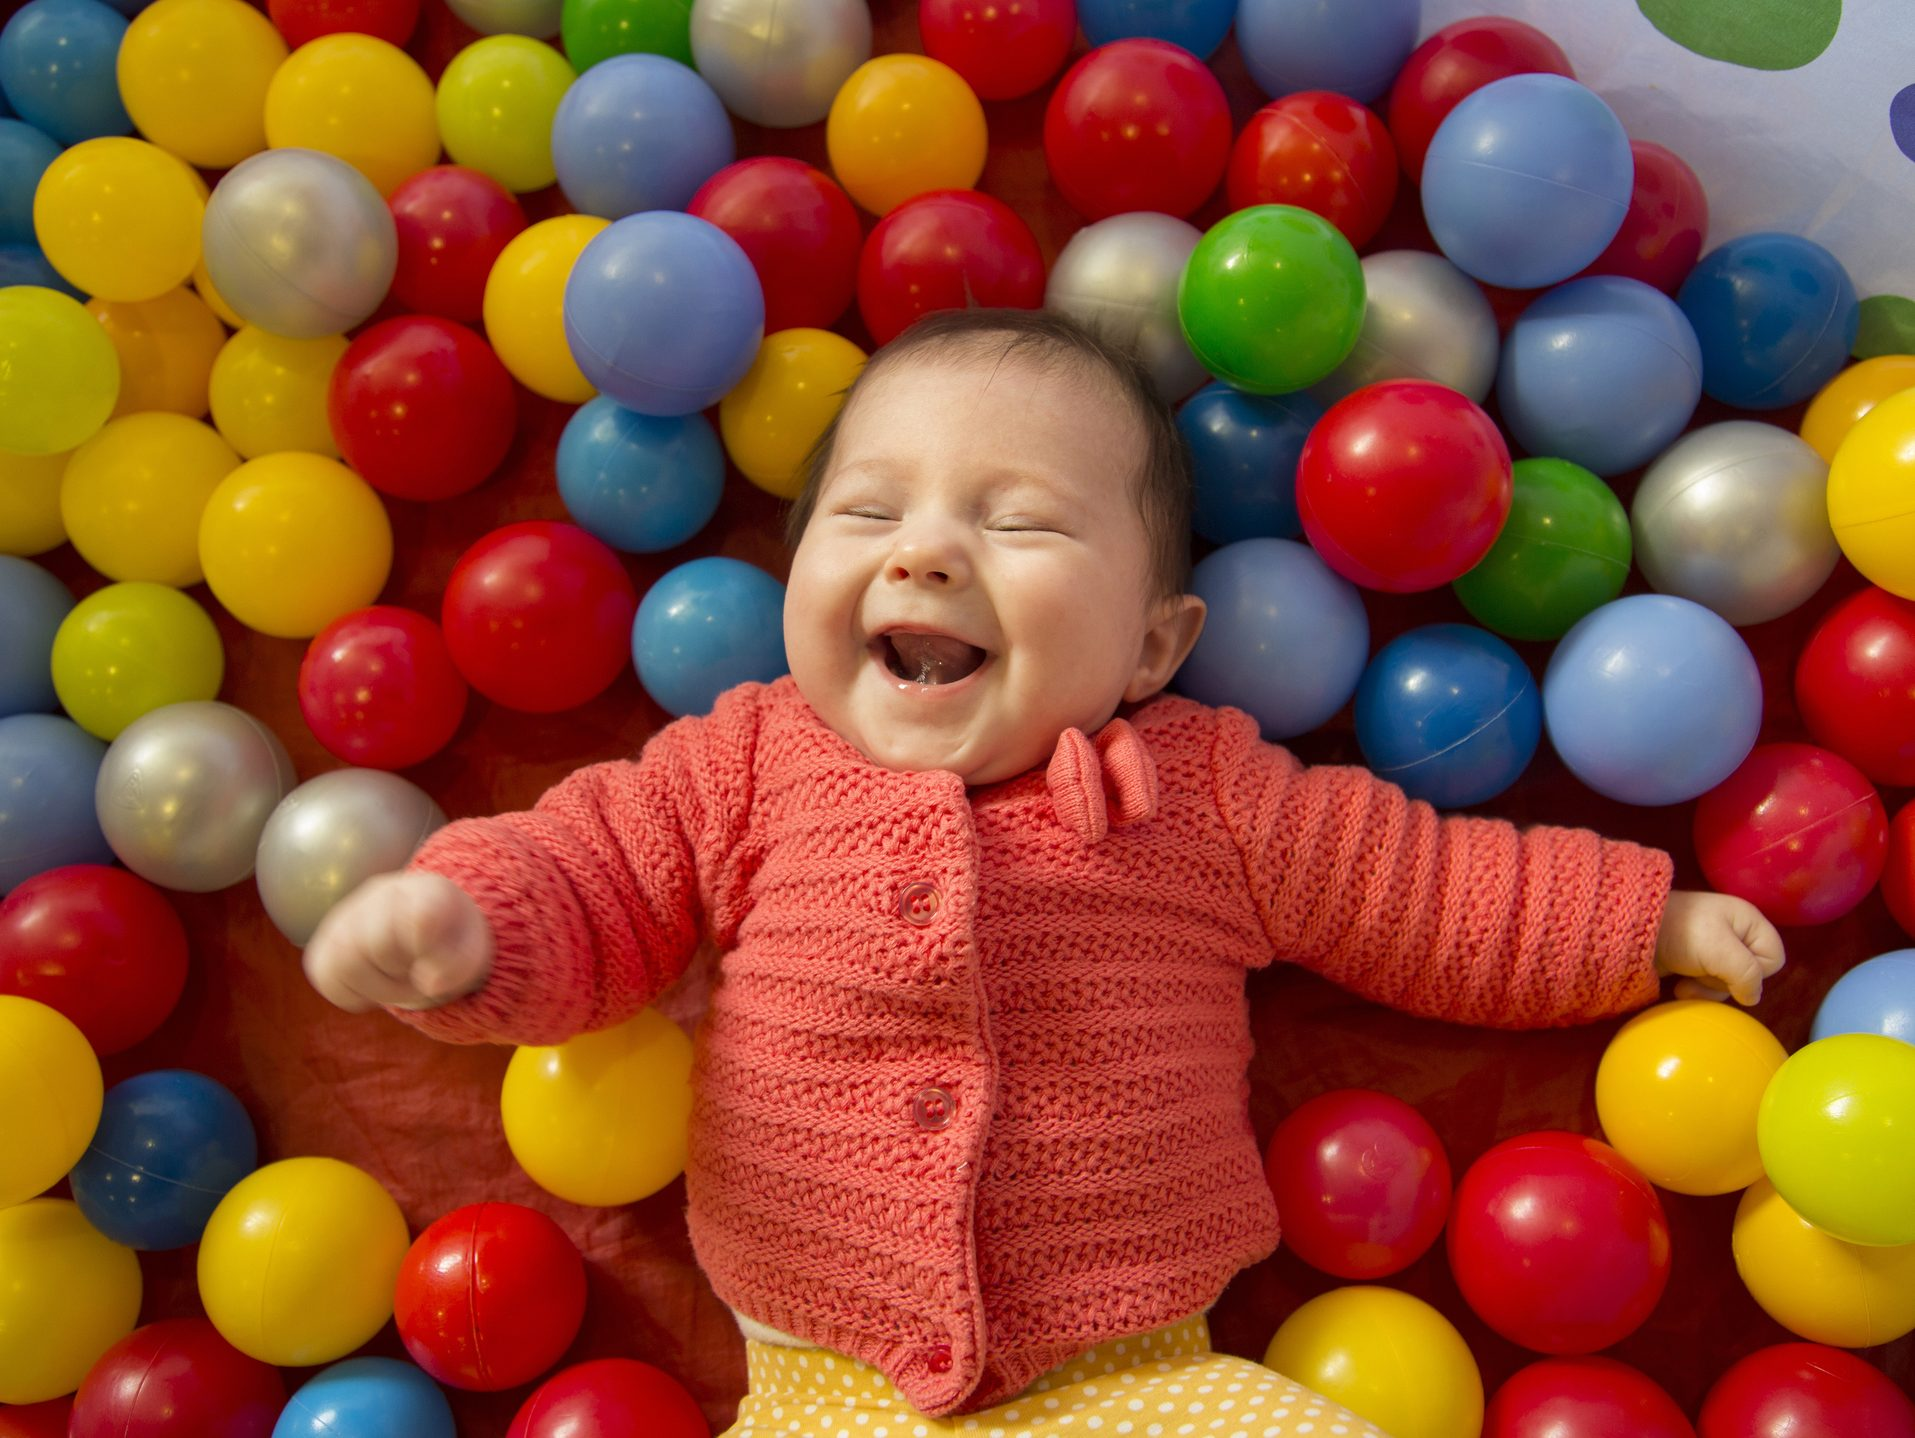 baby girl laughing in a sensory ball pit